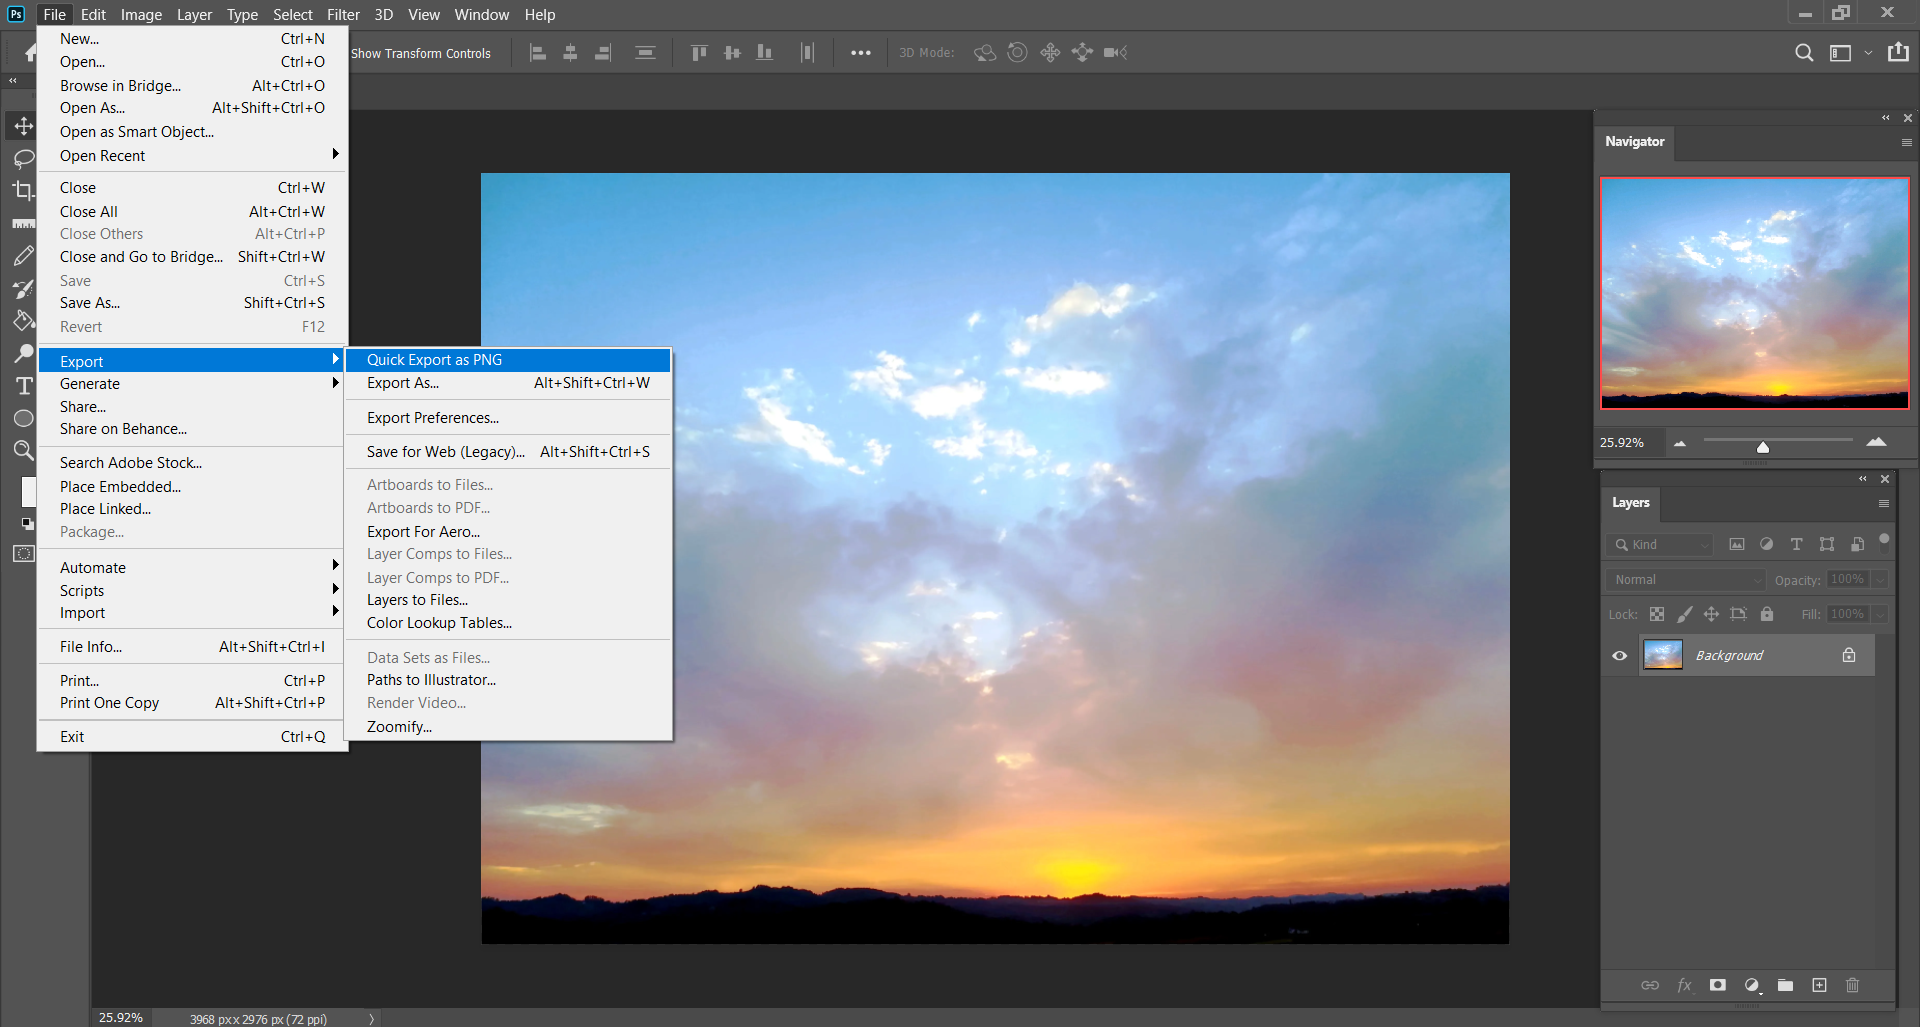 How to convert WEBP to PNG using Photoshop?